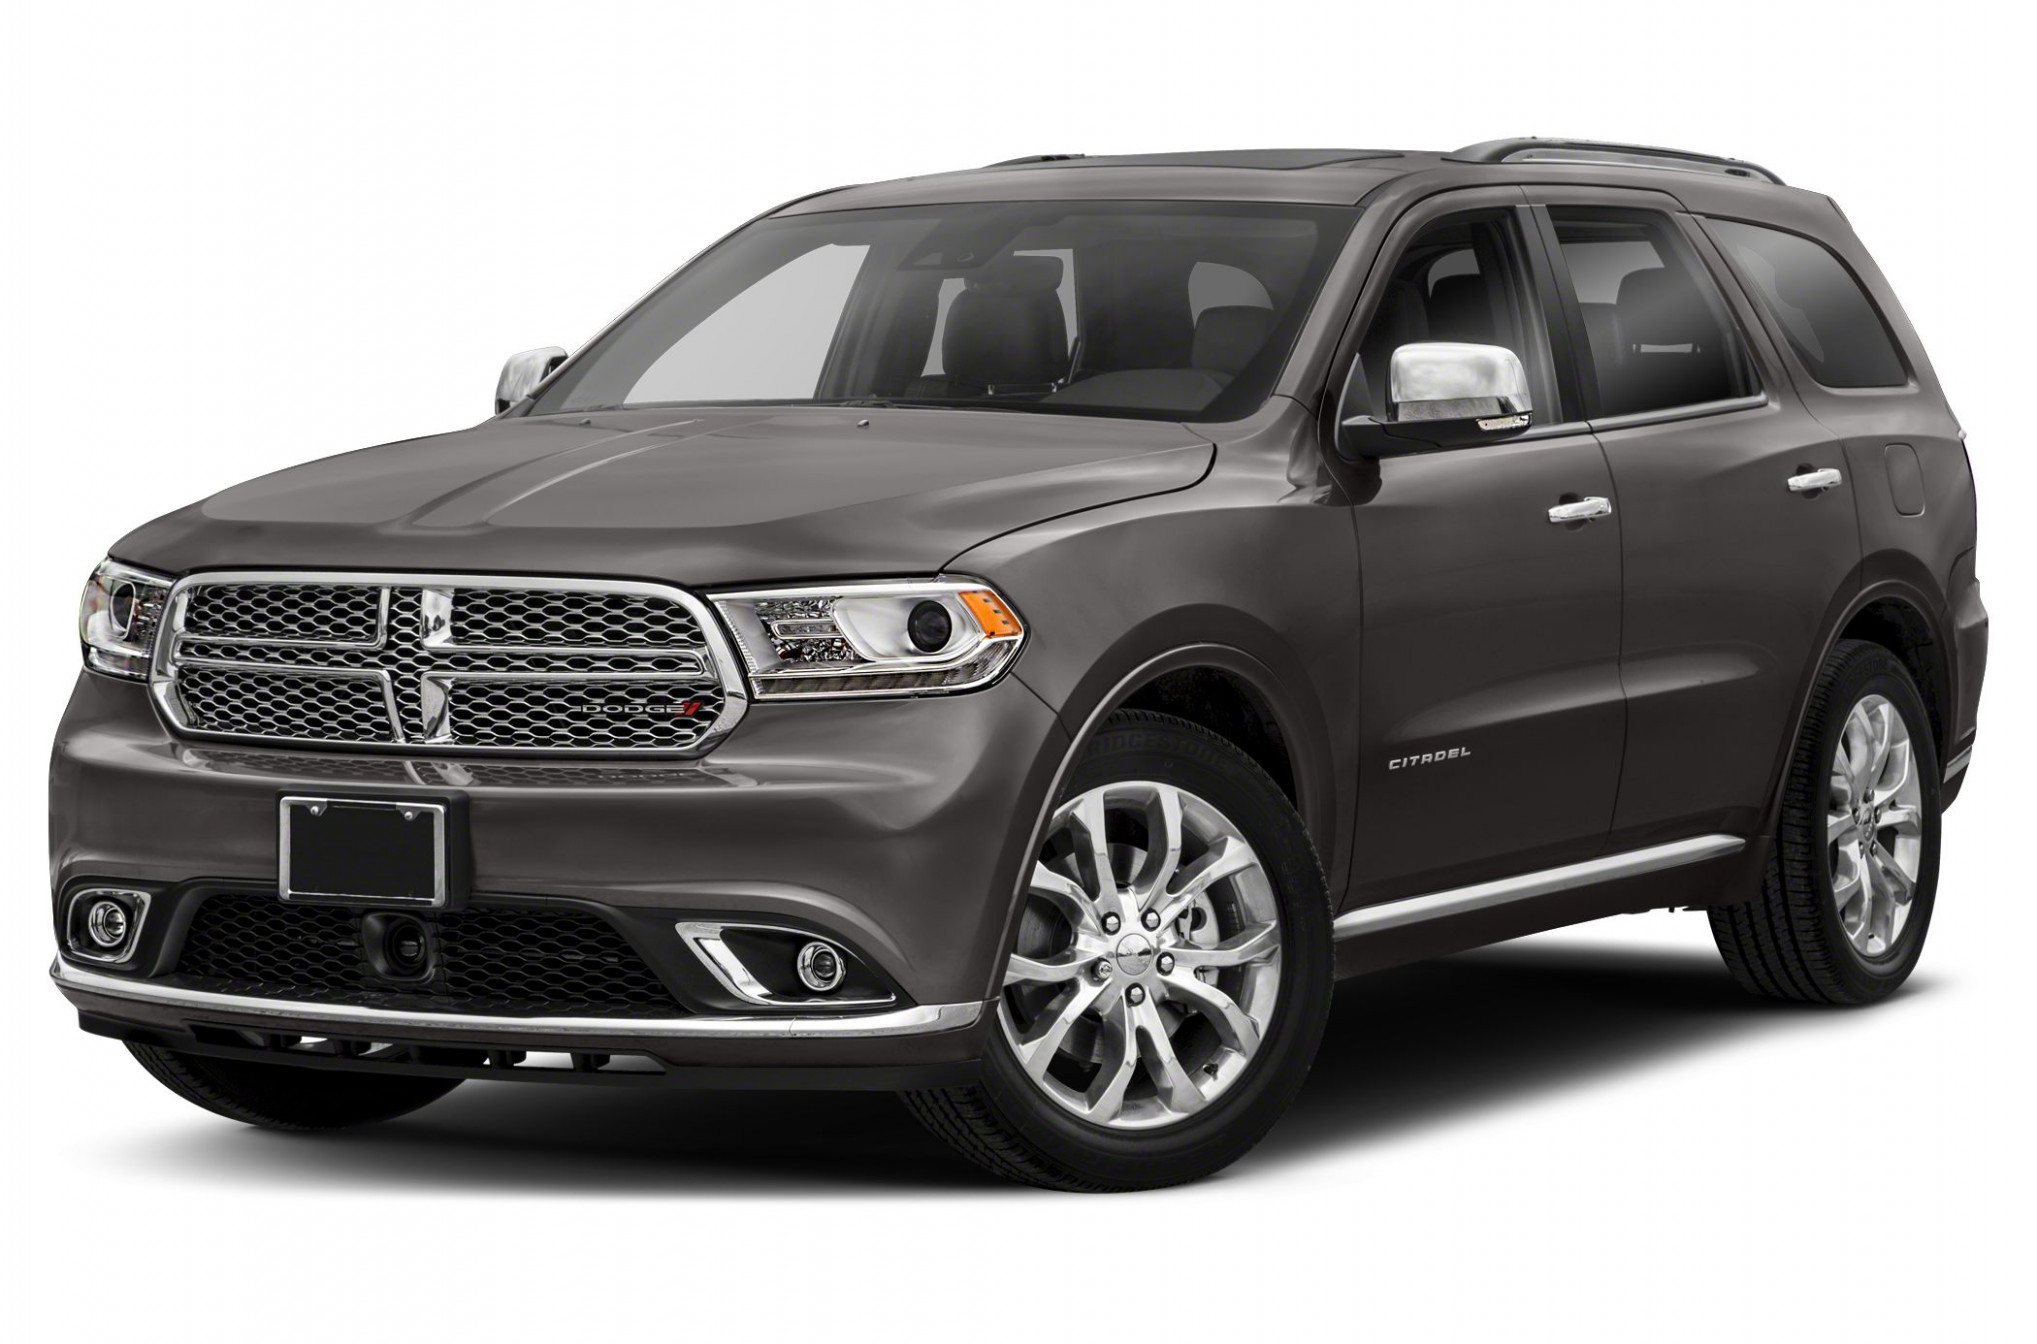 7 Dodge Durango Citadel 7dr All-wheel Drive Pictures - 2020 dodge durango citadel